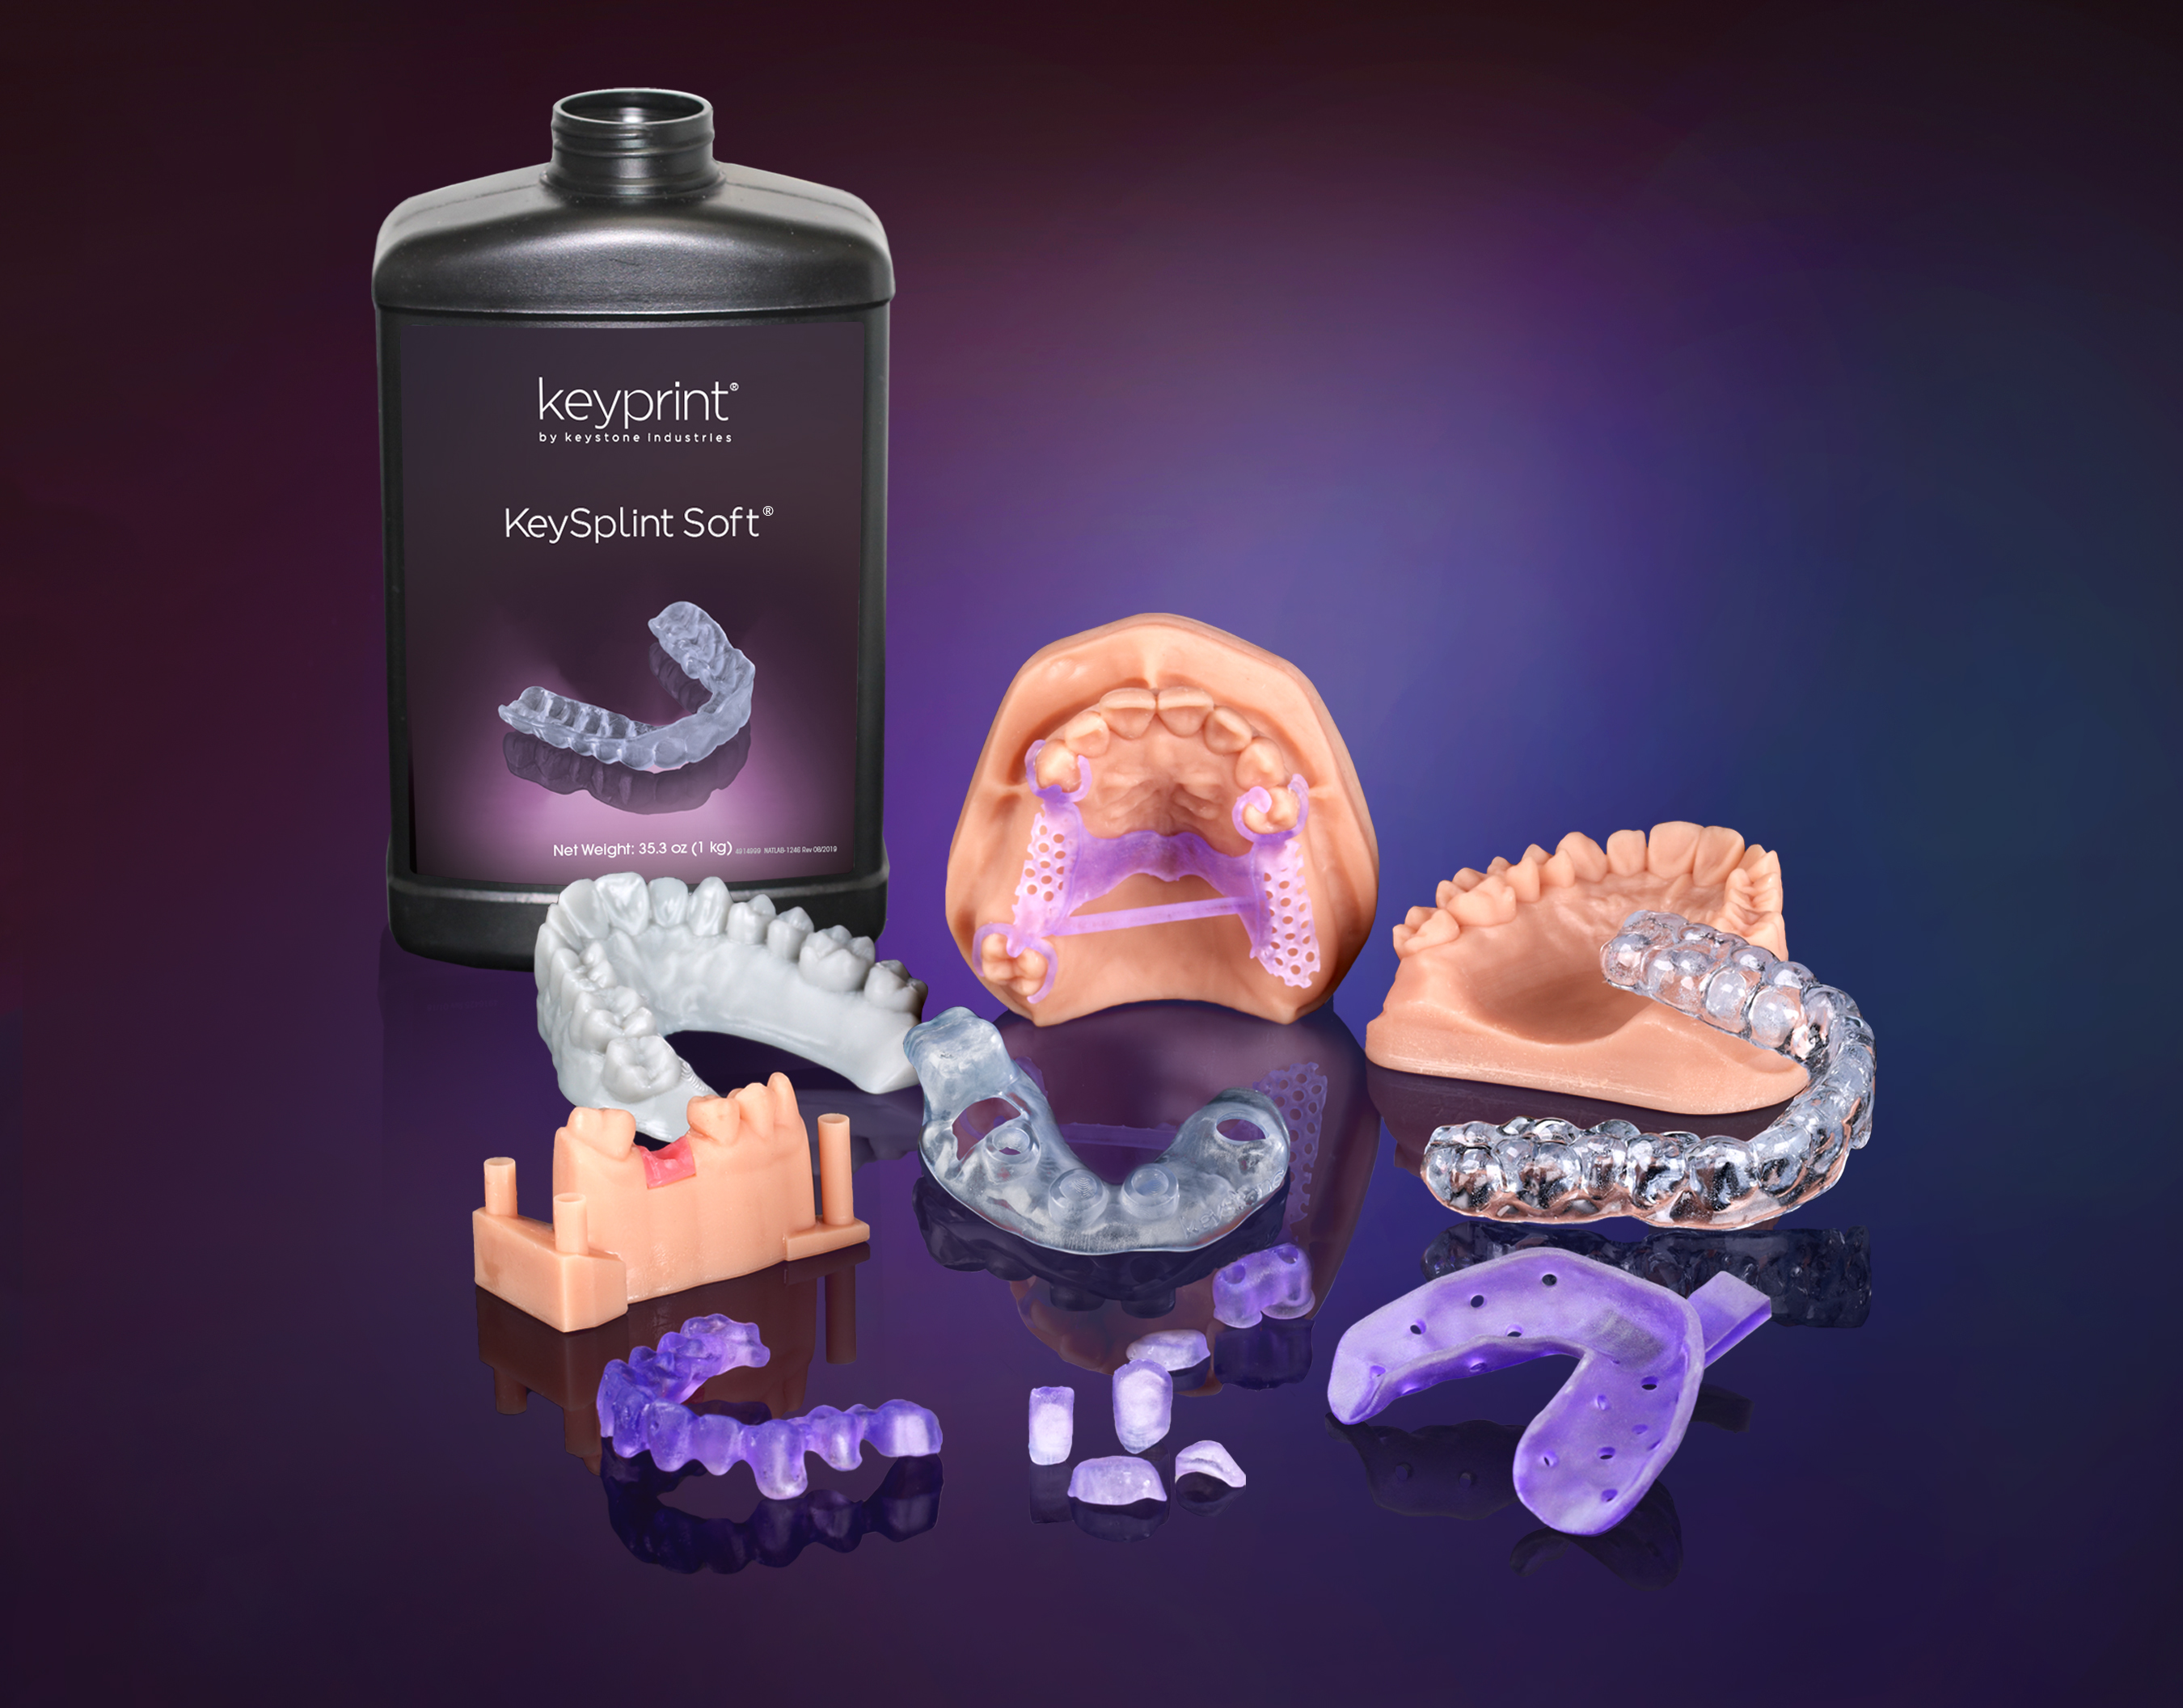 Customized dental solutions marketed under the KeyPrint brand. Image via Henkel.